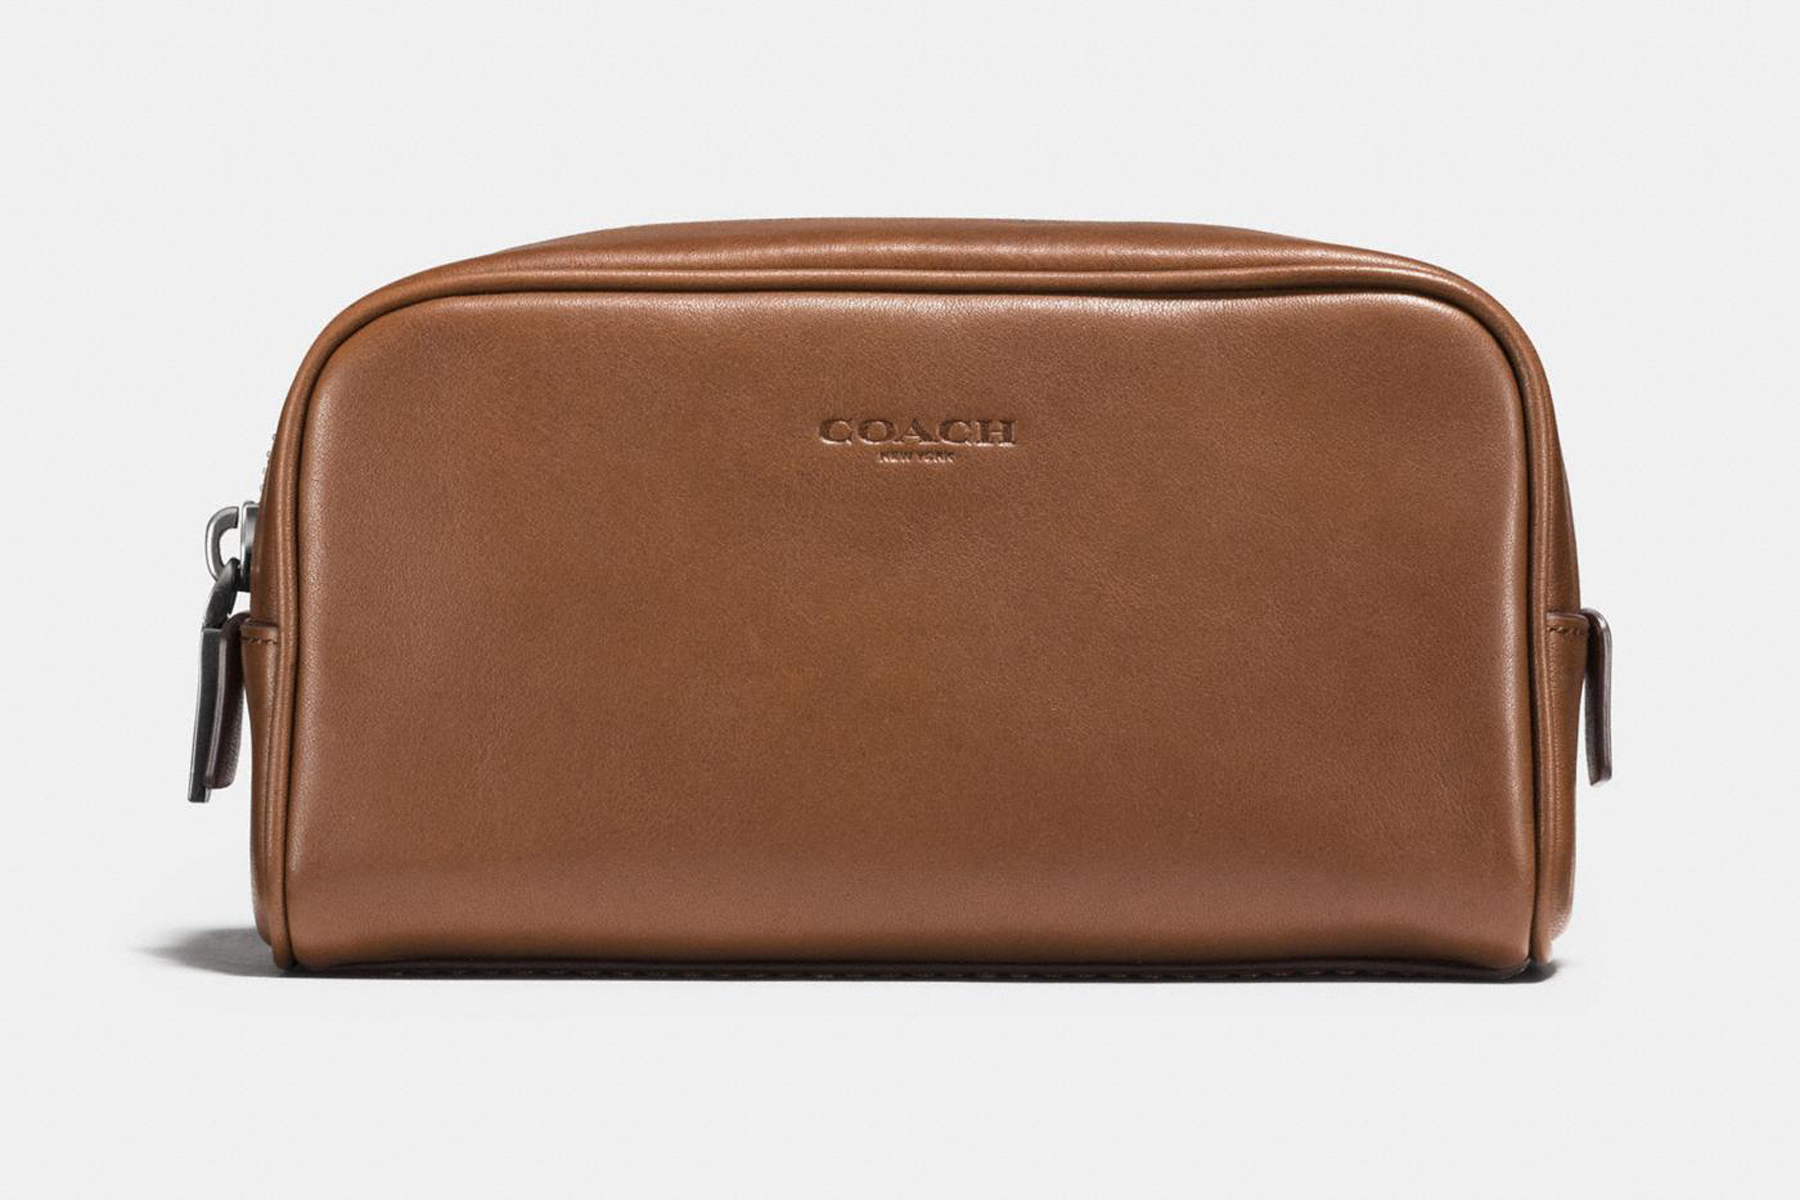 Coach's brown leather Dopp kit